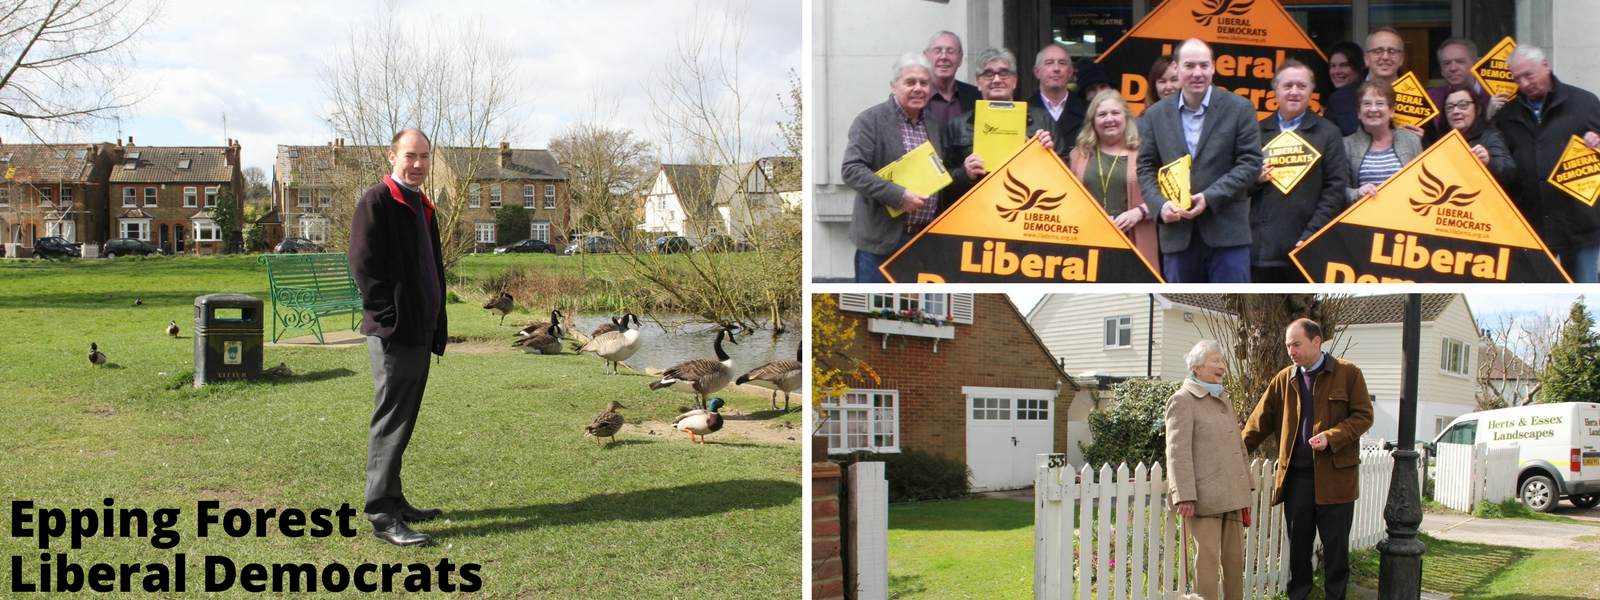 Epping Forest Lib Dem header image featuring Jon Whitehouse